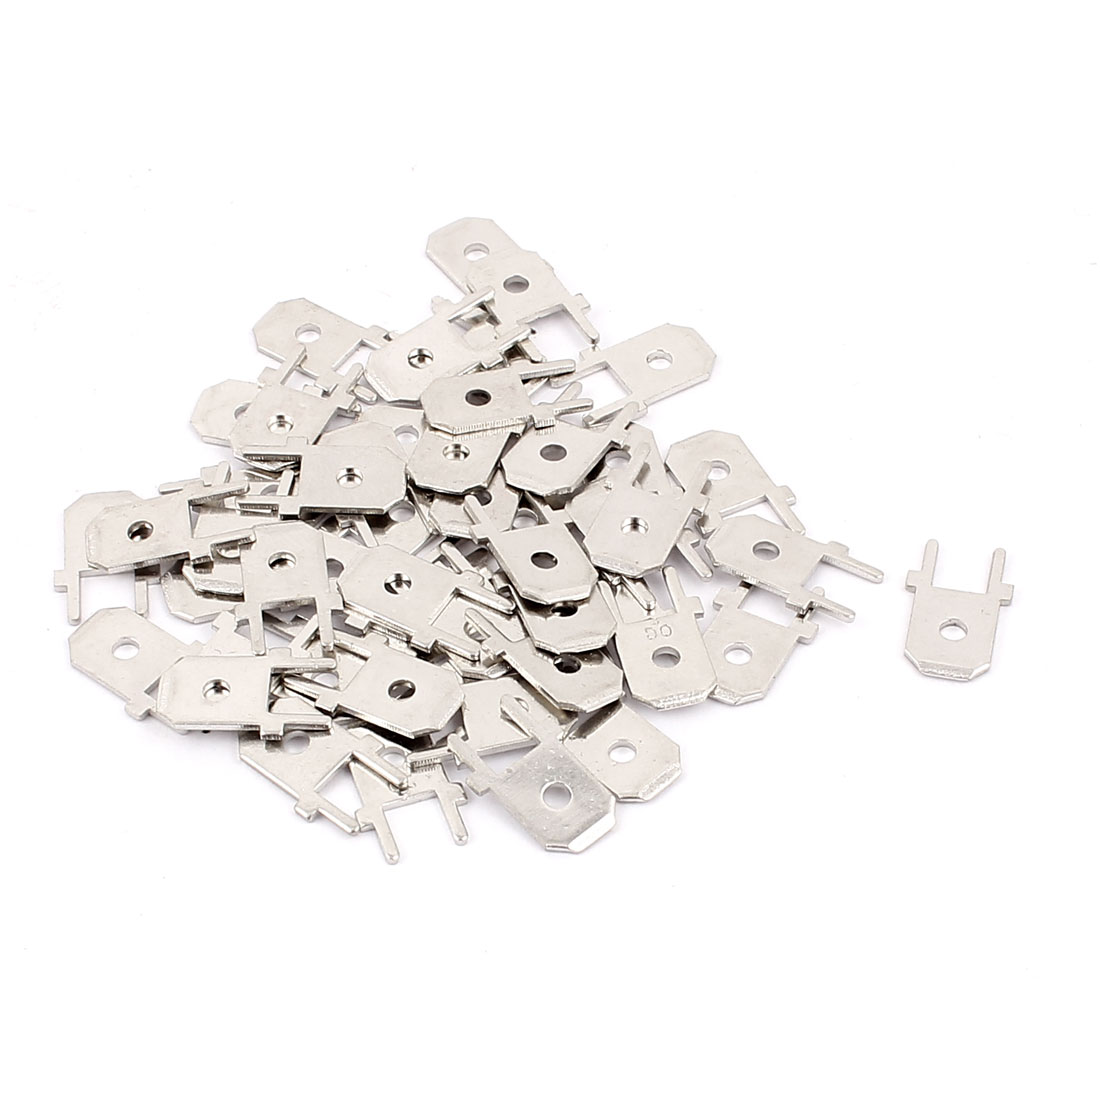 "50Pcs 6.3mm 0.25"" Male Metal Terminal Wiring Connectors"